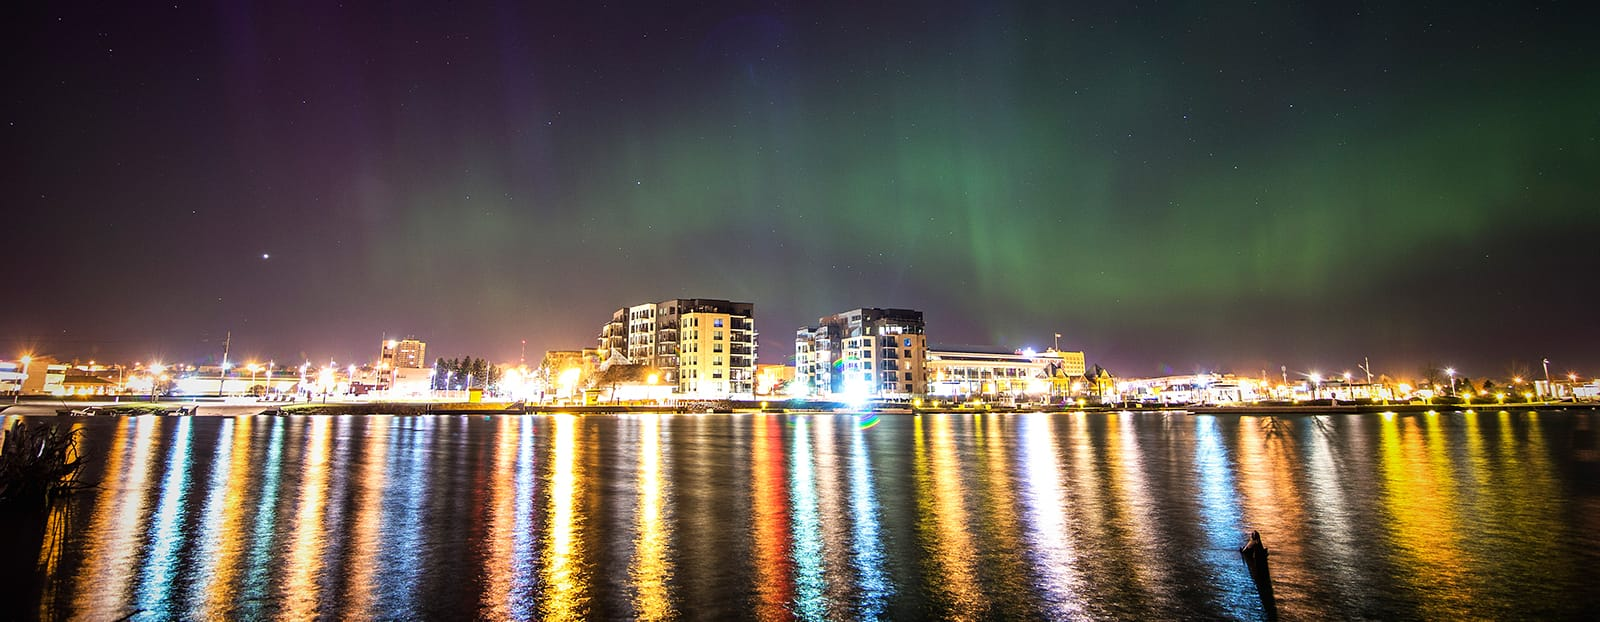 Northern Lights over city waterfront